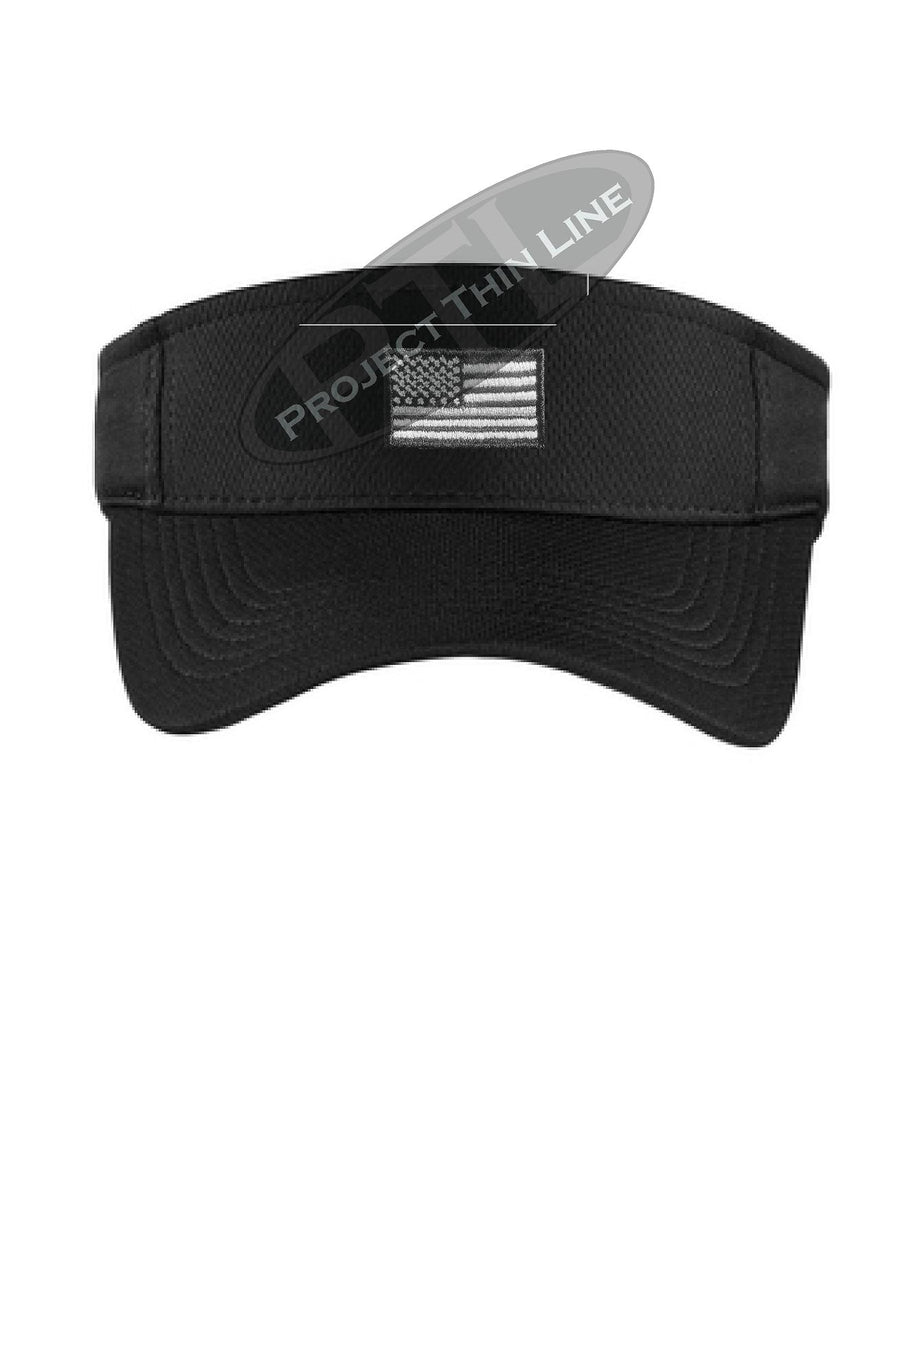 Black Embroidered Tactical Line Subdued American Flag Visor